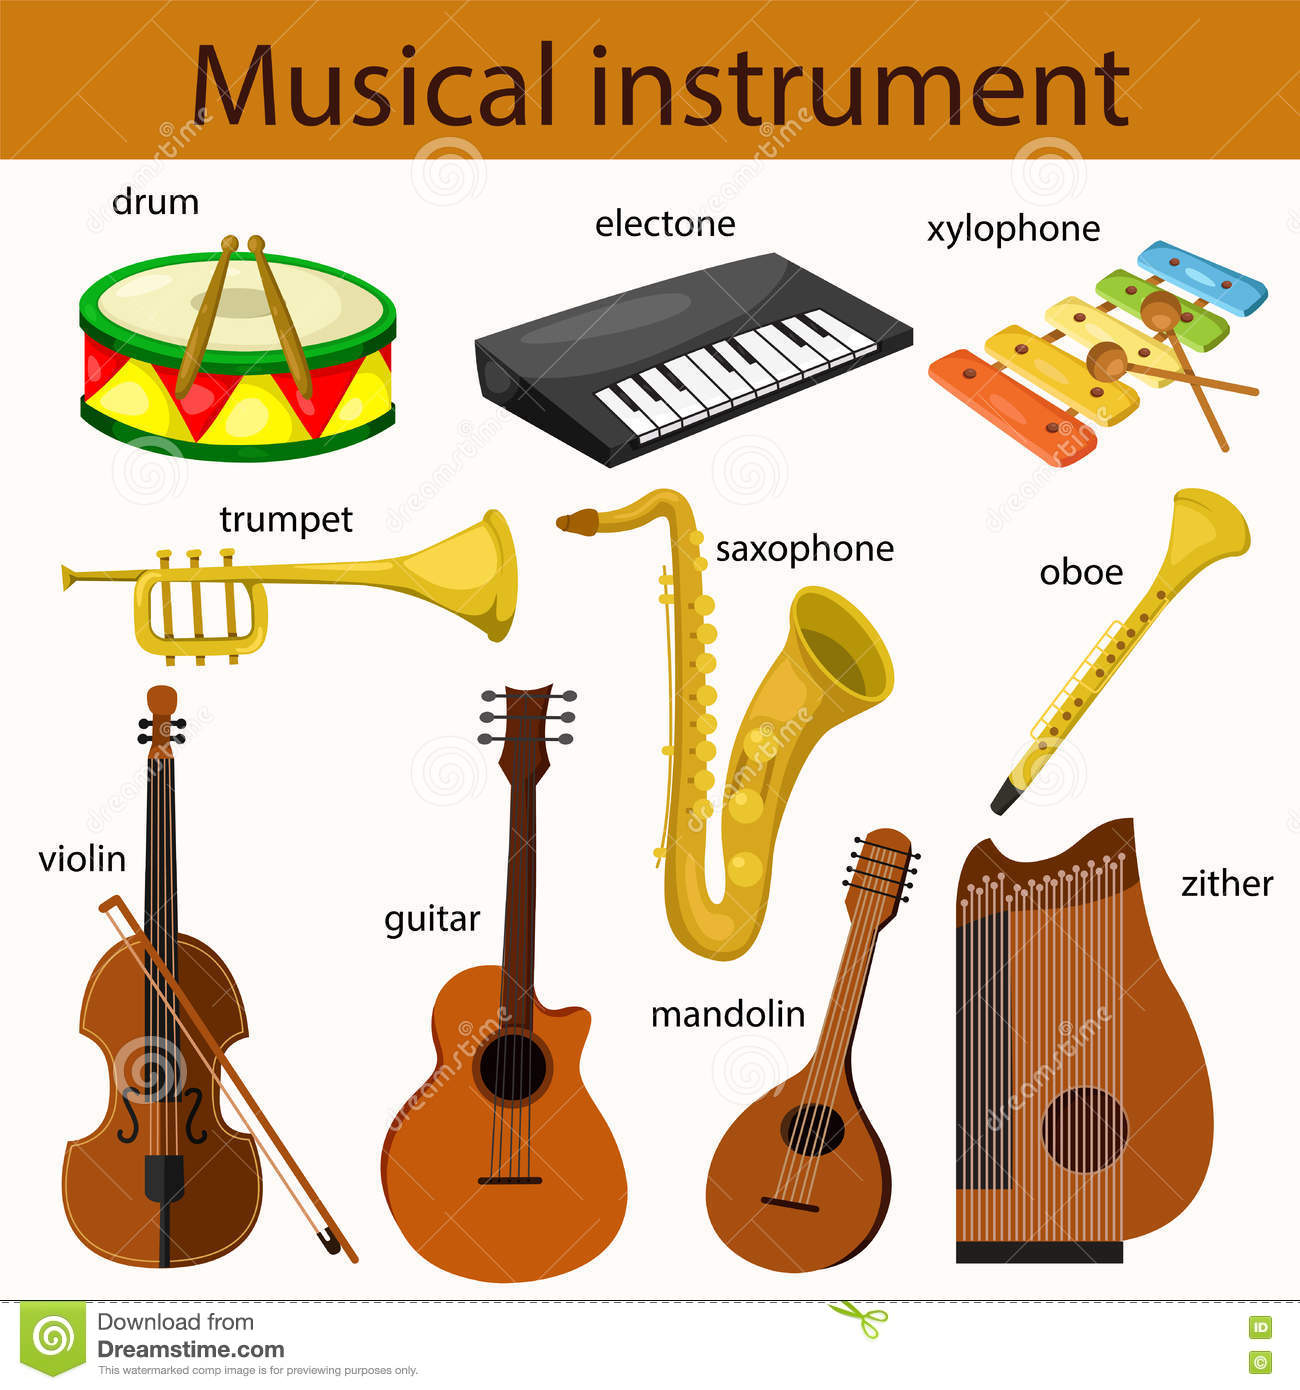 Illustrator Of Musical Instrument Stock Vector